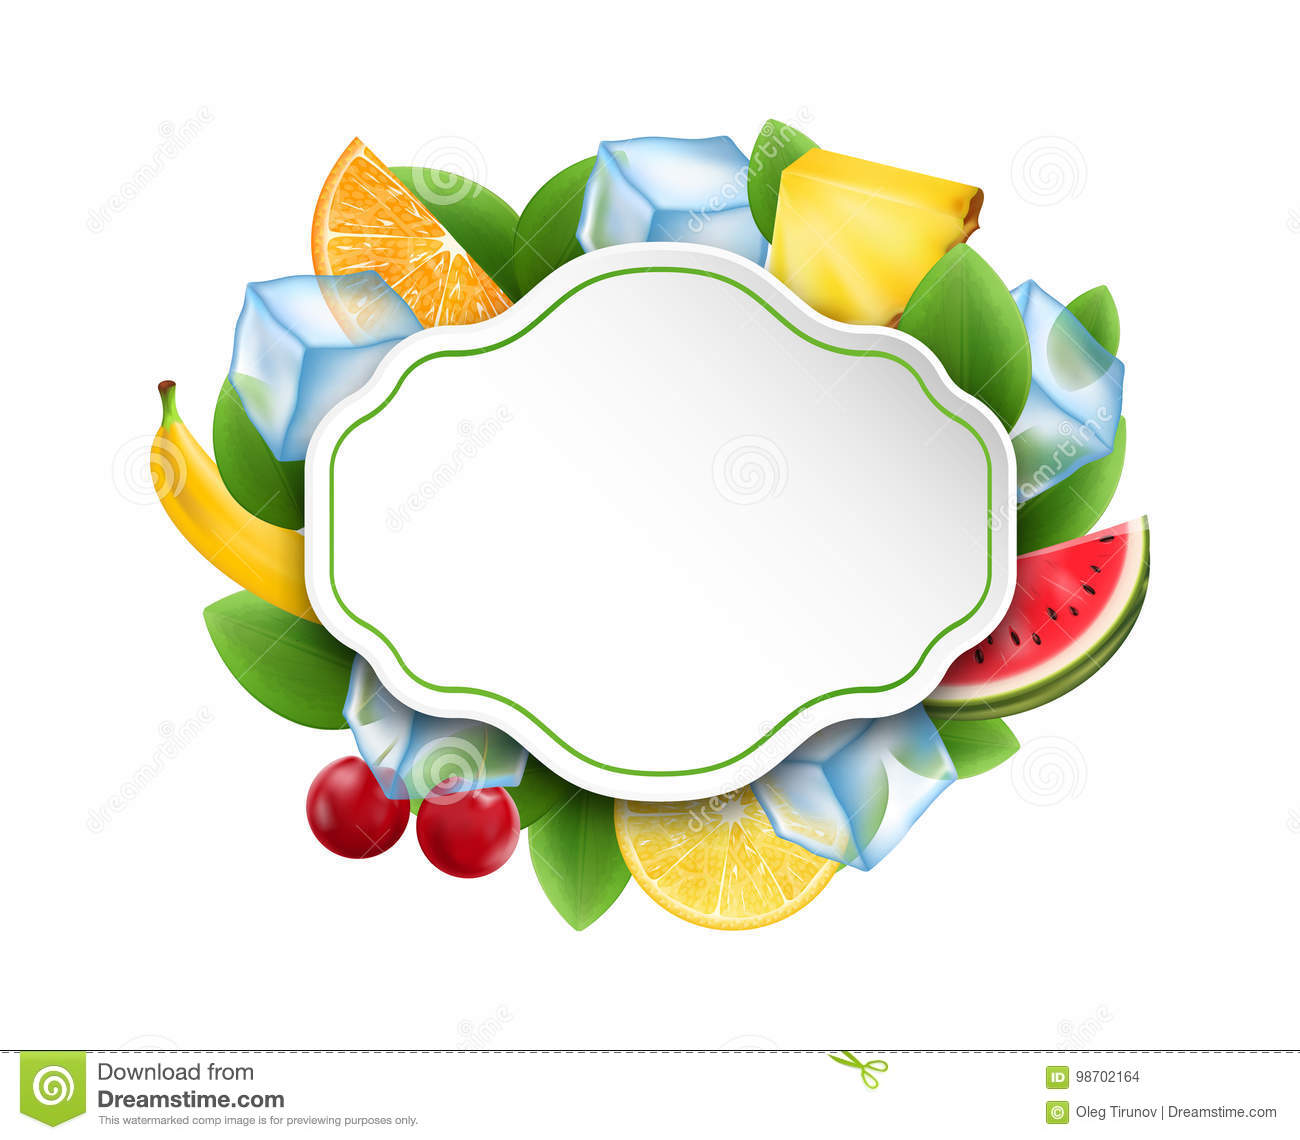 Food Clean Card with Fruits and Berries, Ice Cubes